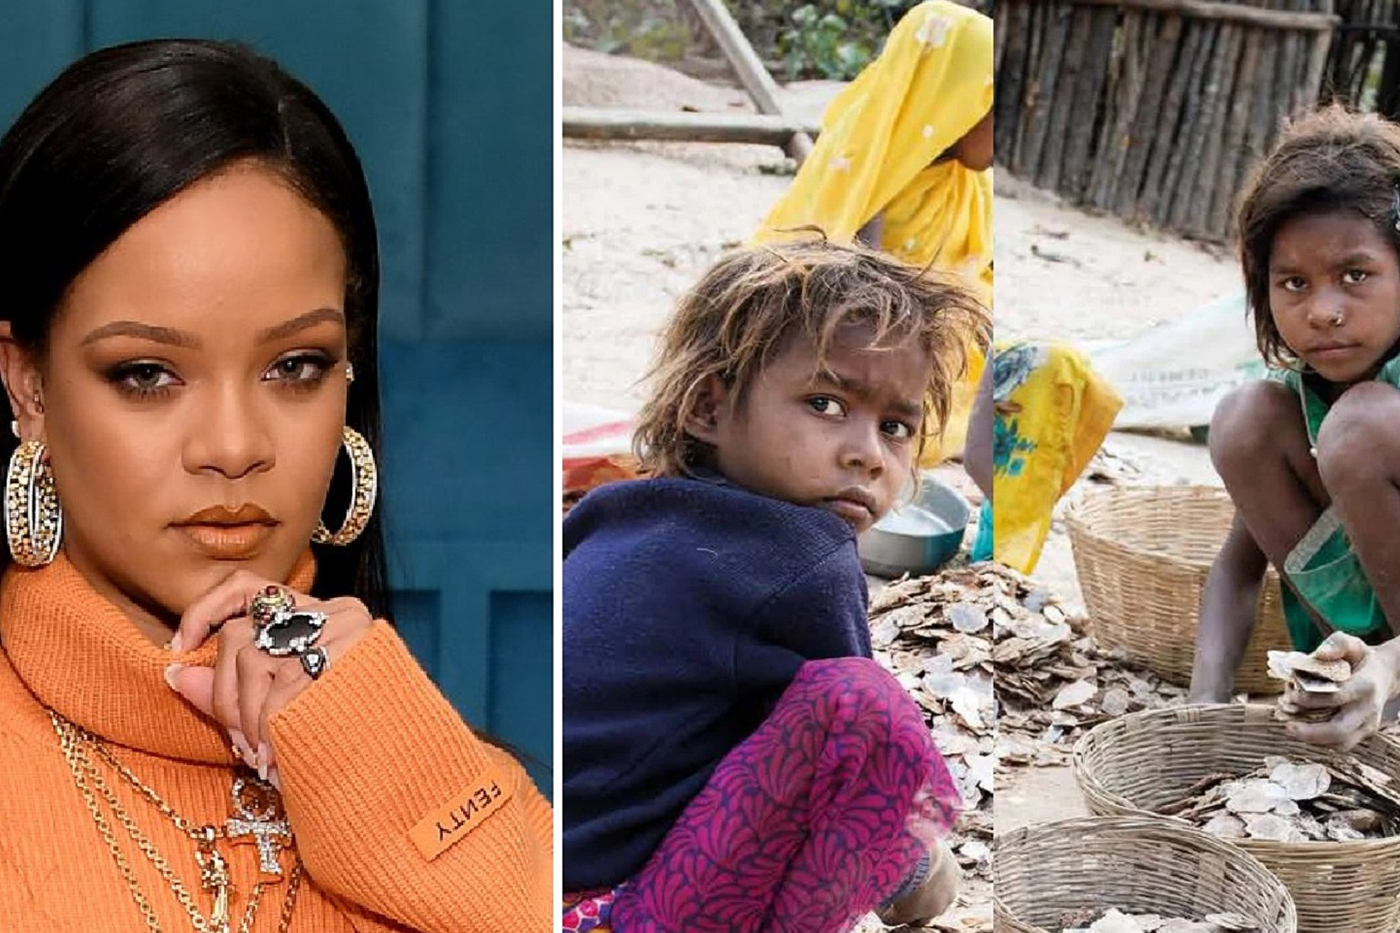 Child labour complaint filed against Rihanna's Fenty Beauty